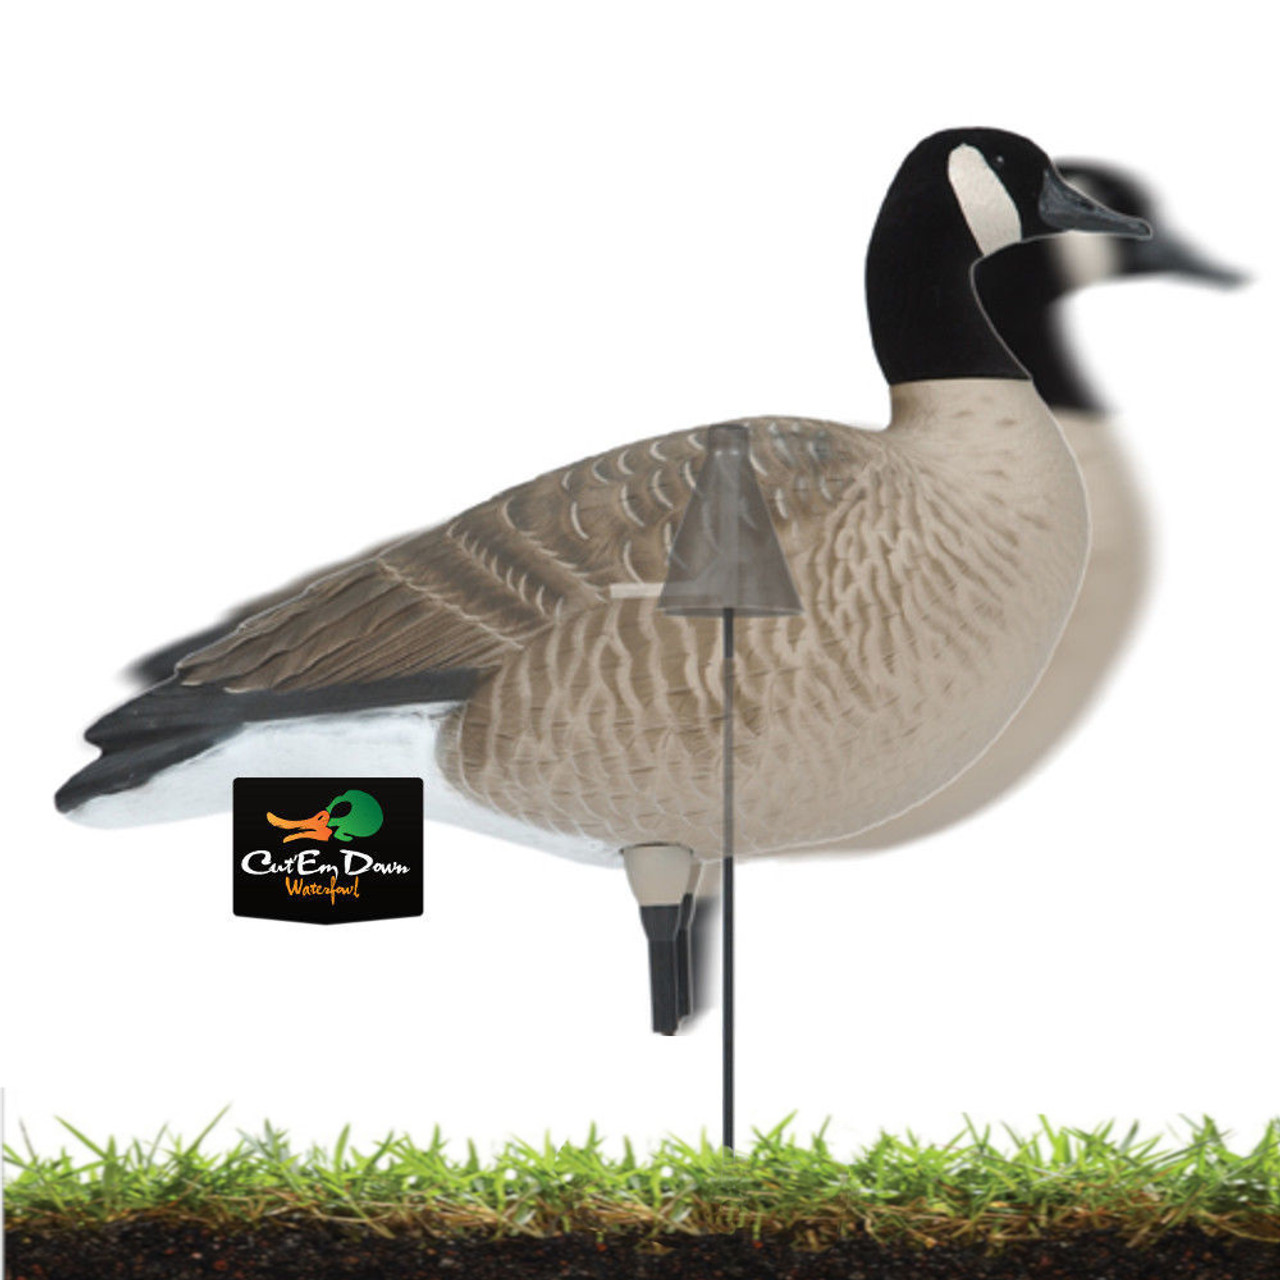 Details about AVERY GHG GREENHEAD GEAR REALMOTION REAL MOTION KIT FB DUCK  GOOSE DECOYS 6 PACK